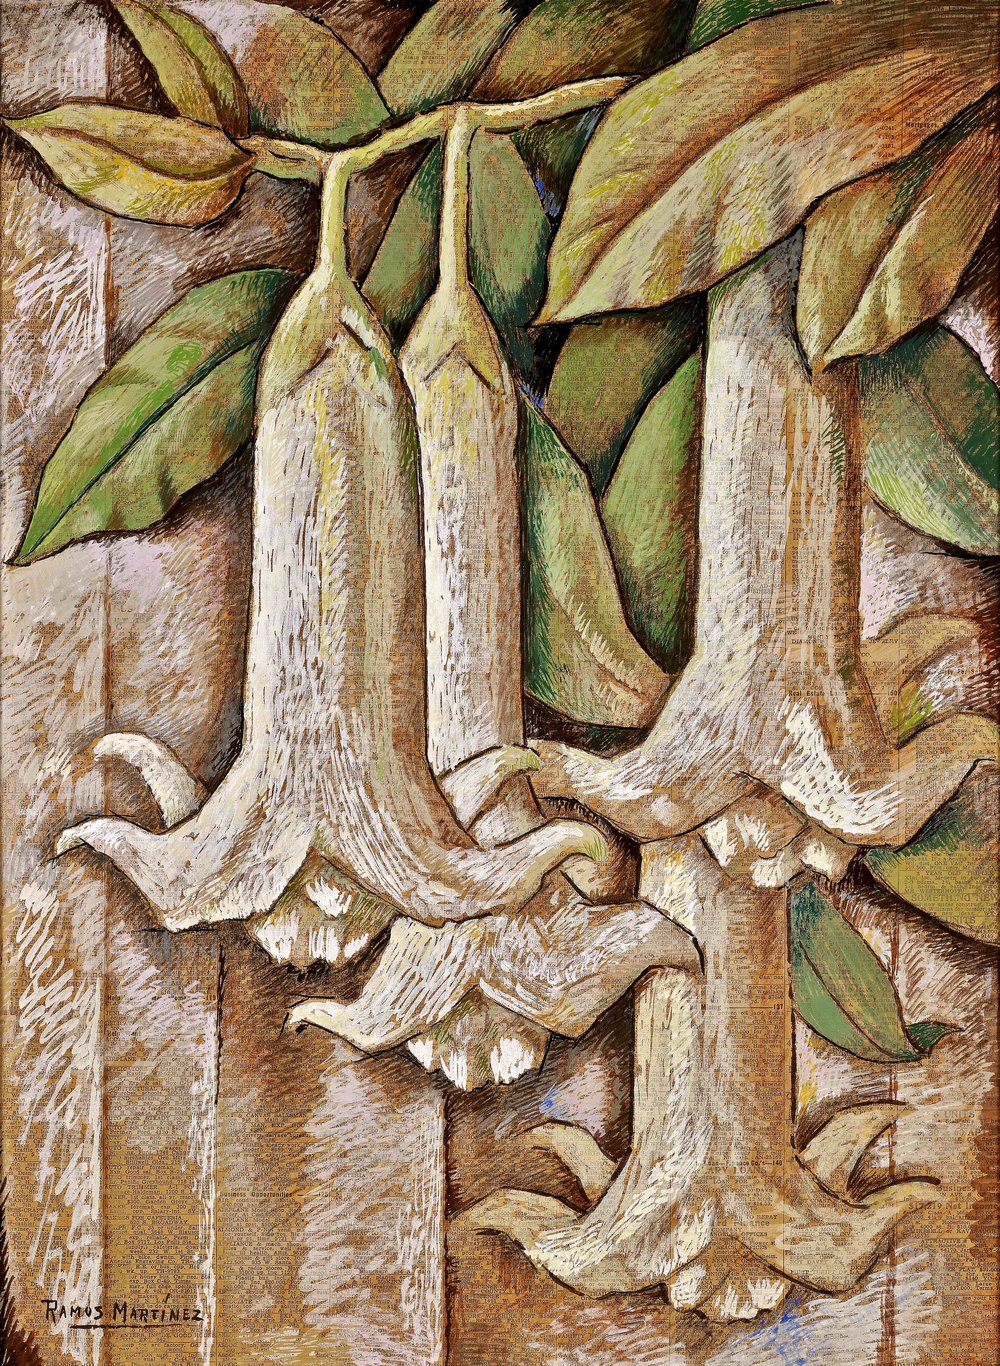 Los Floripondios / Trumpet Flowers  1946 tempera on newsprint / temple sobre papel periódico ( Los Angeles Times , February 17, 1946, page 7) 22.8 x 16.5 inches; 57.8 x 41. 9 centímetros